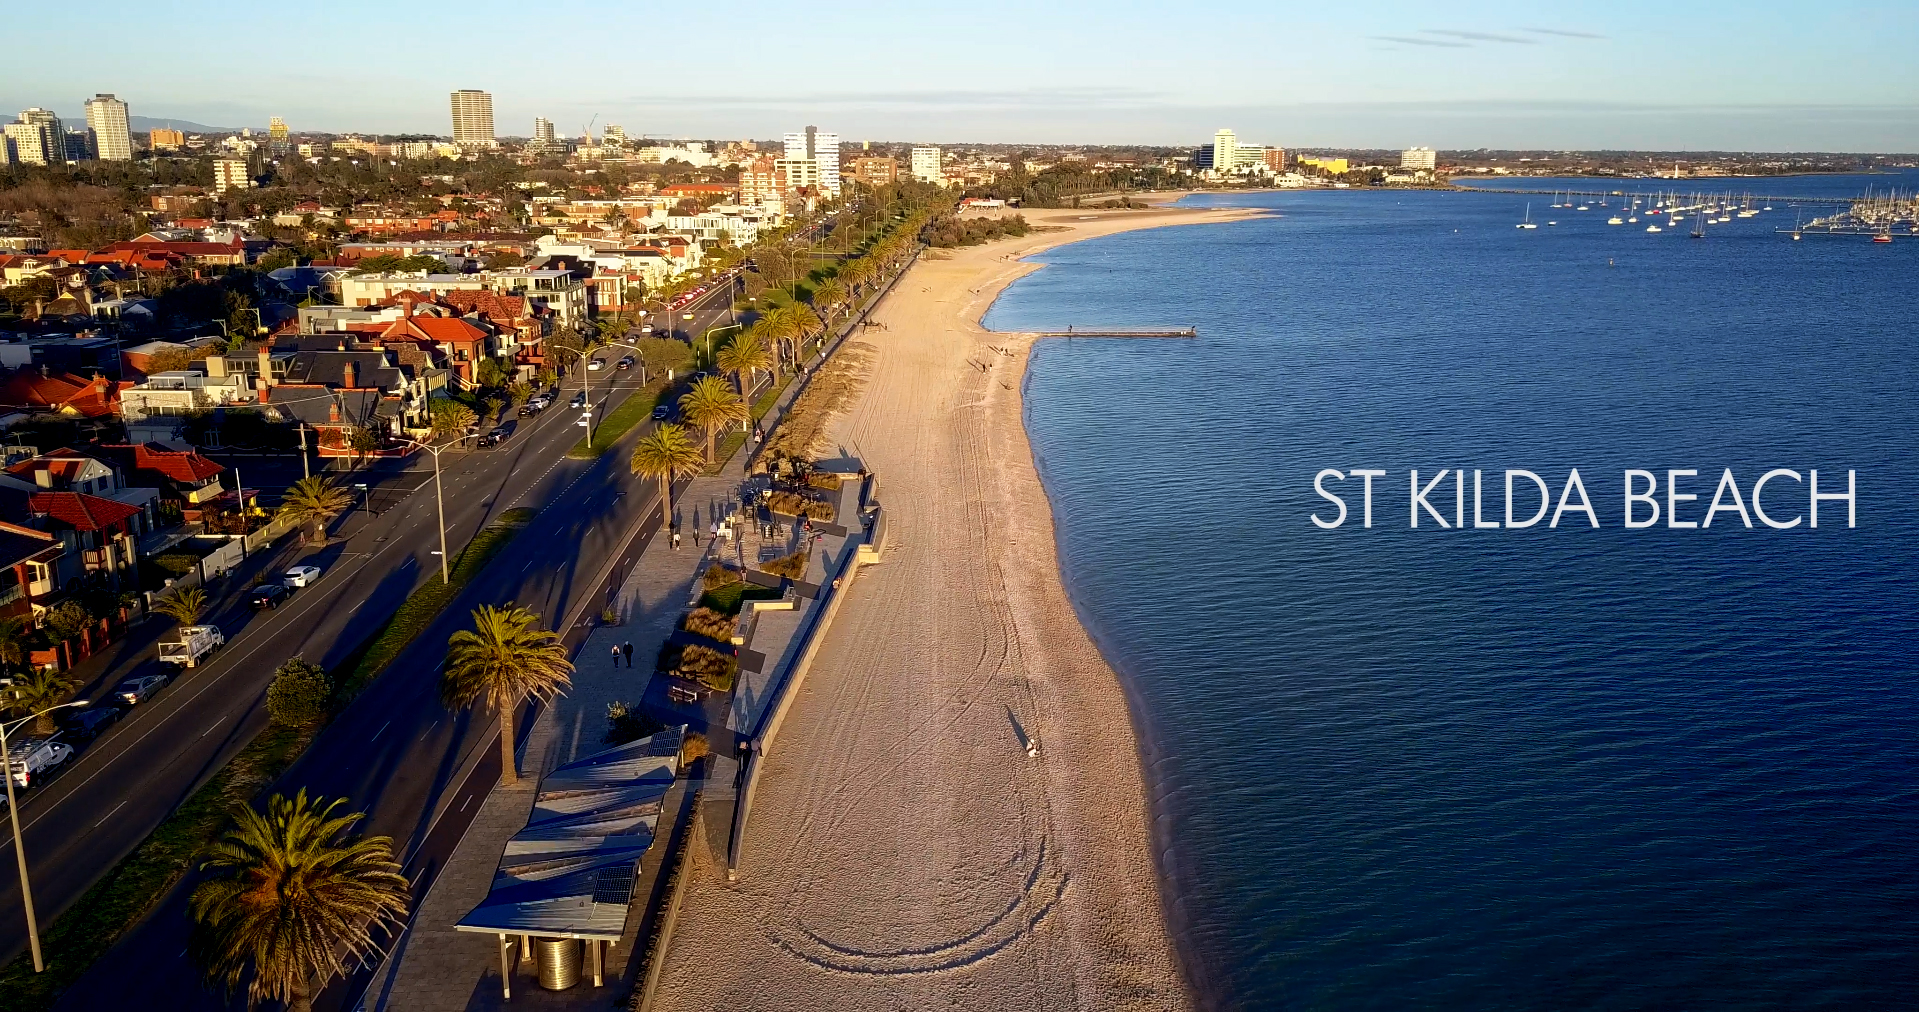 St Kilda Beach 4k Drone Footage Alex Shoolman